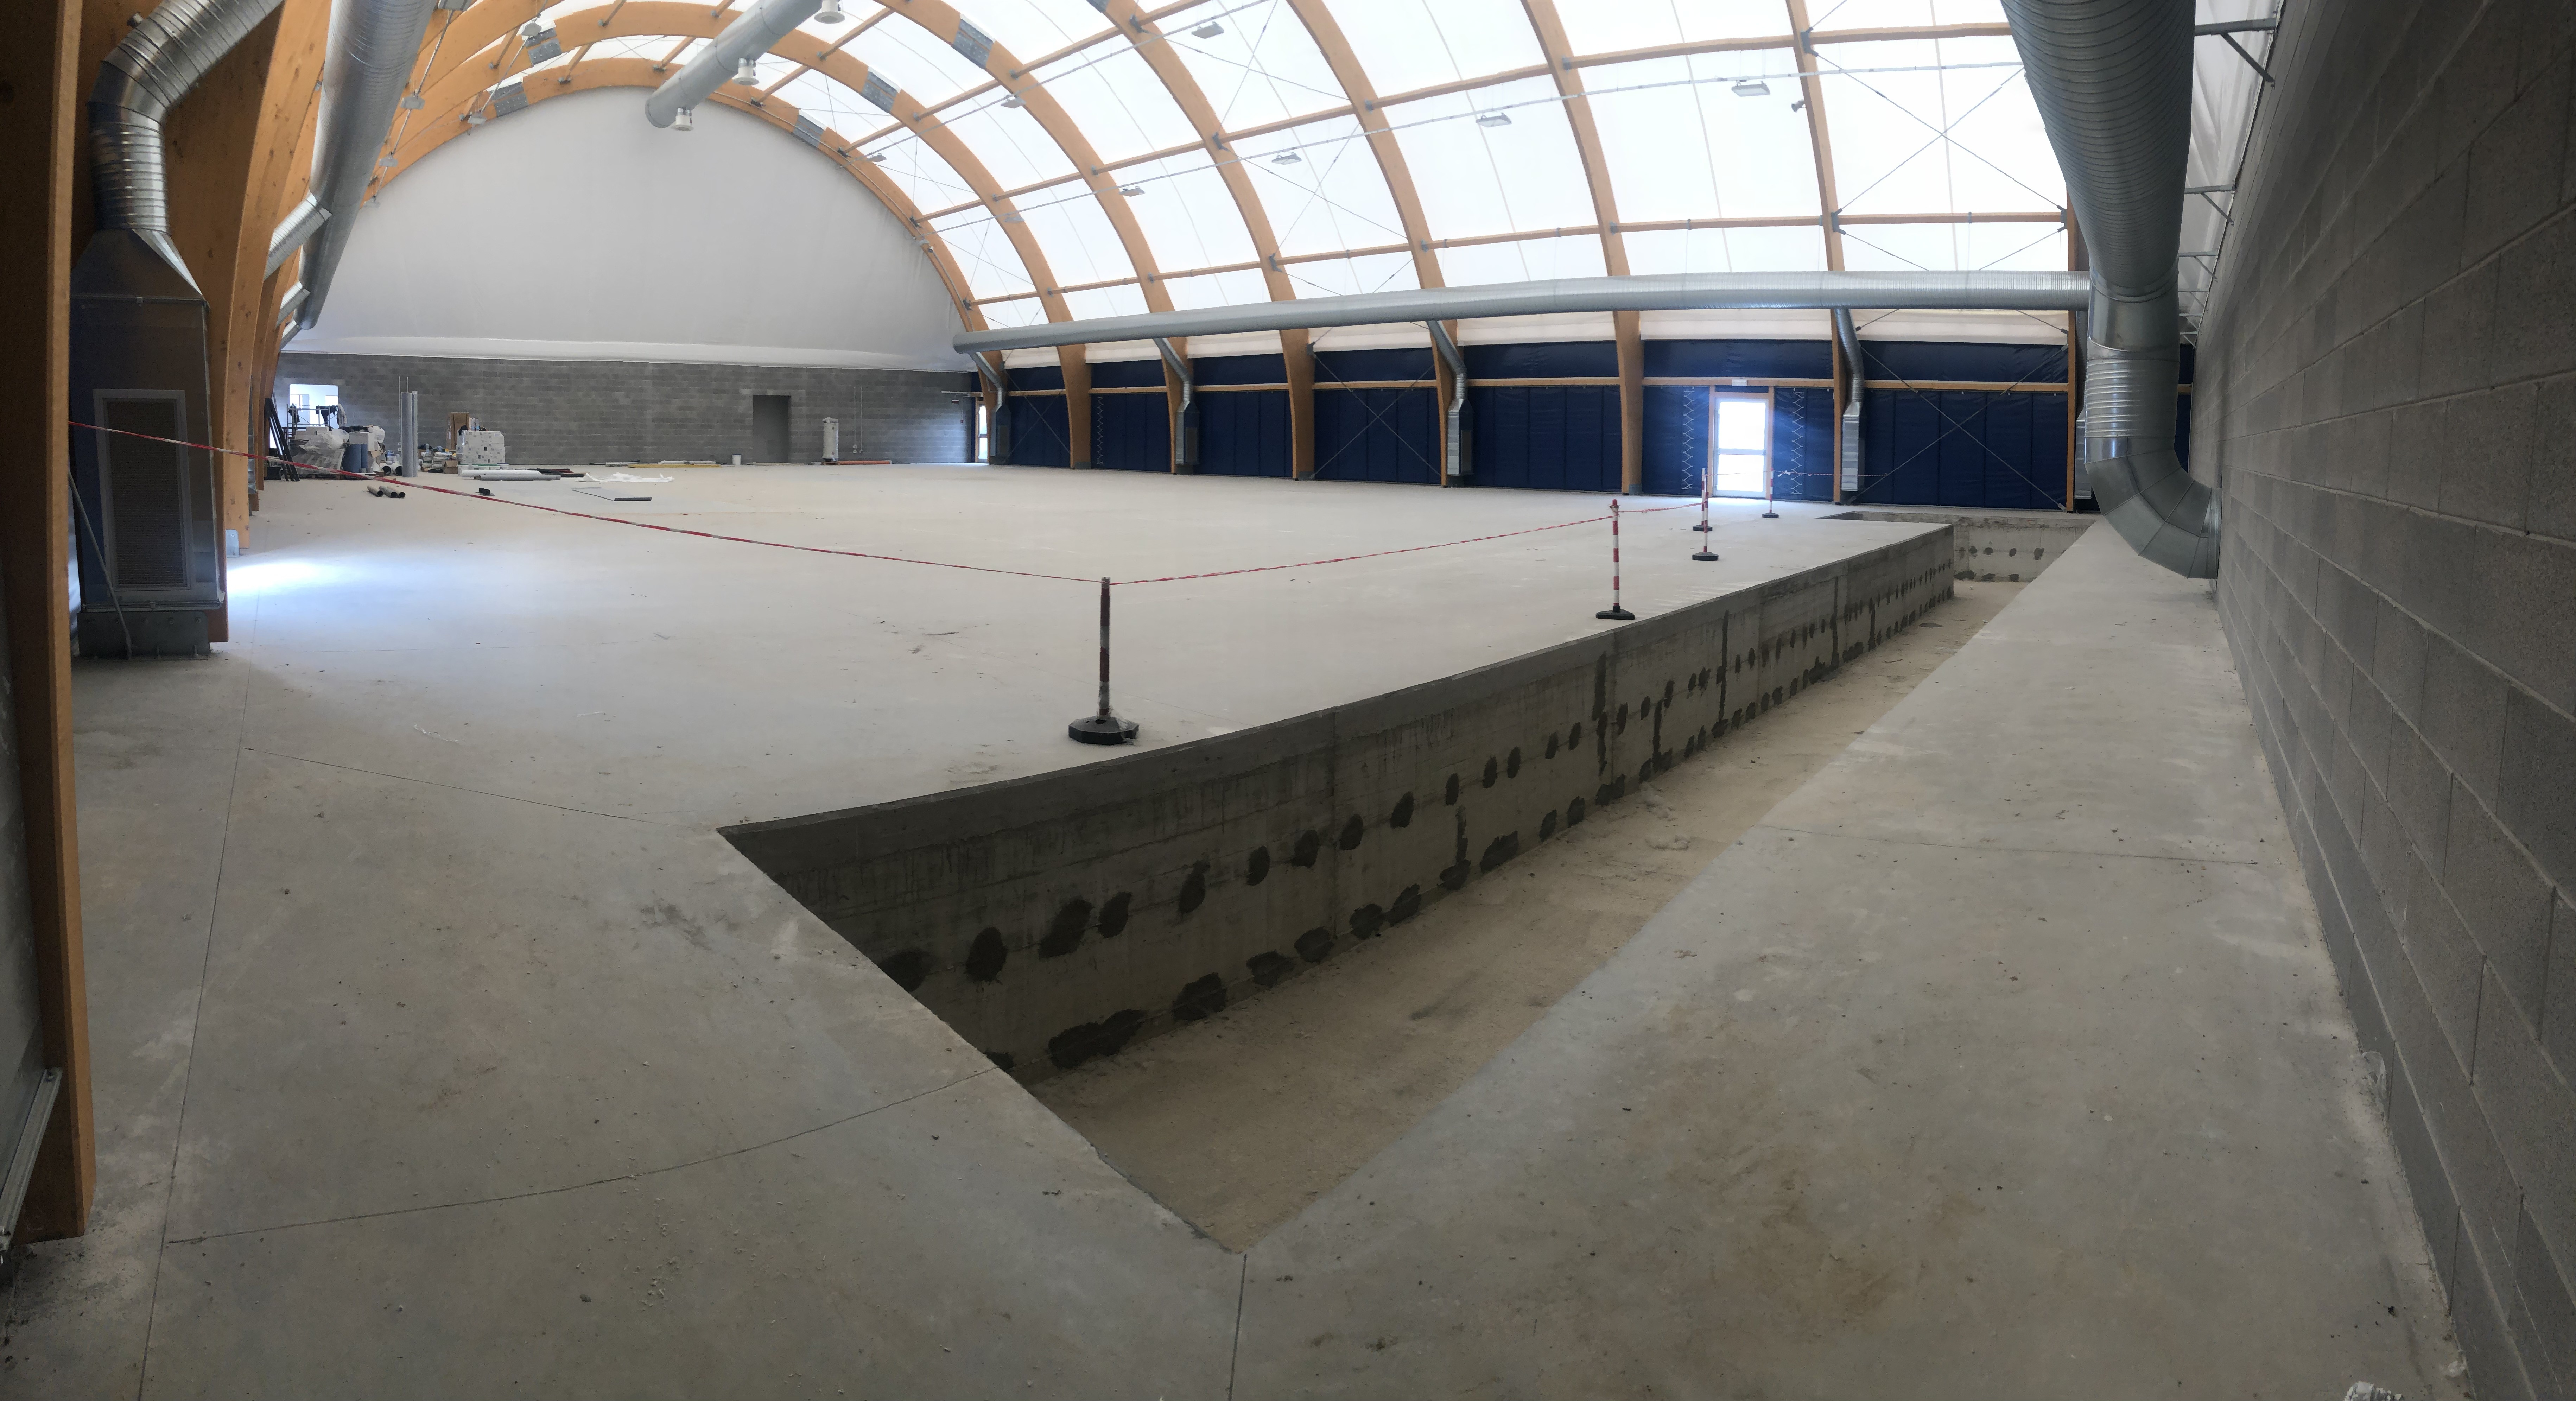 What the sports facility looked like before the intervention of Dalla Riva